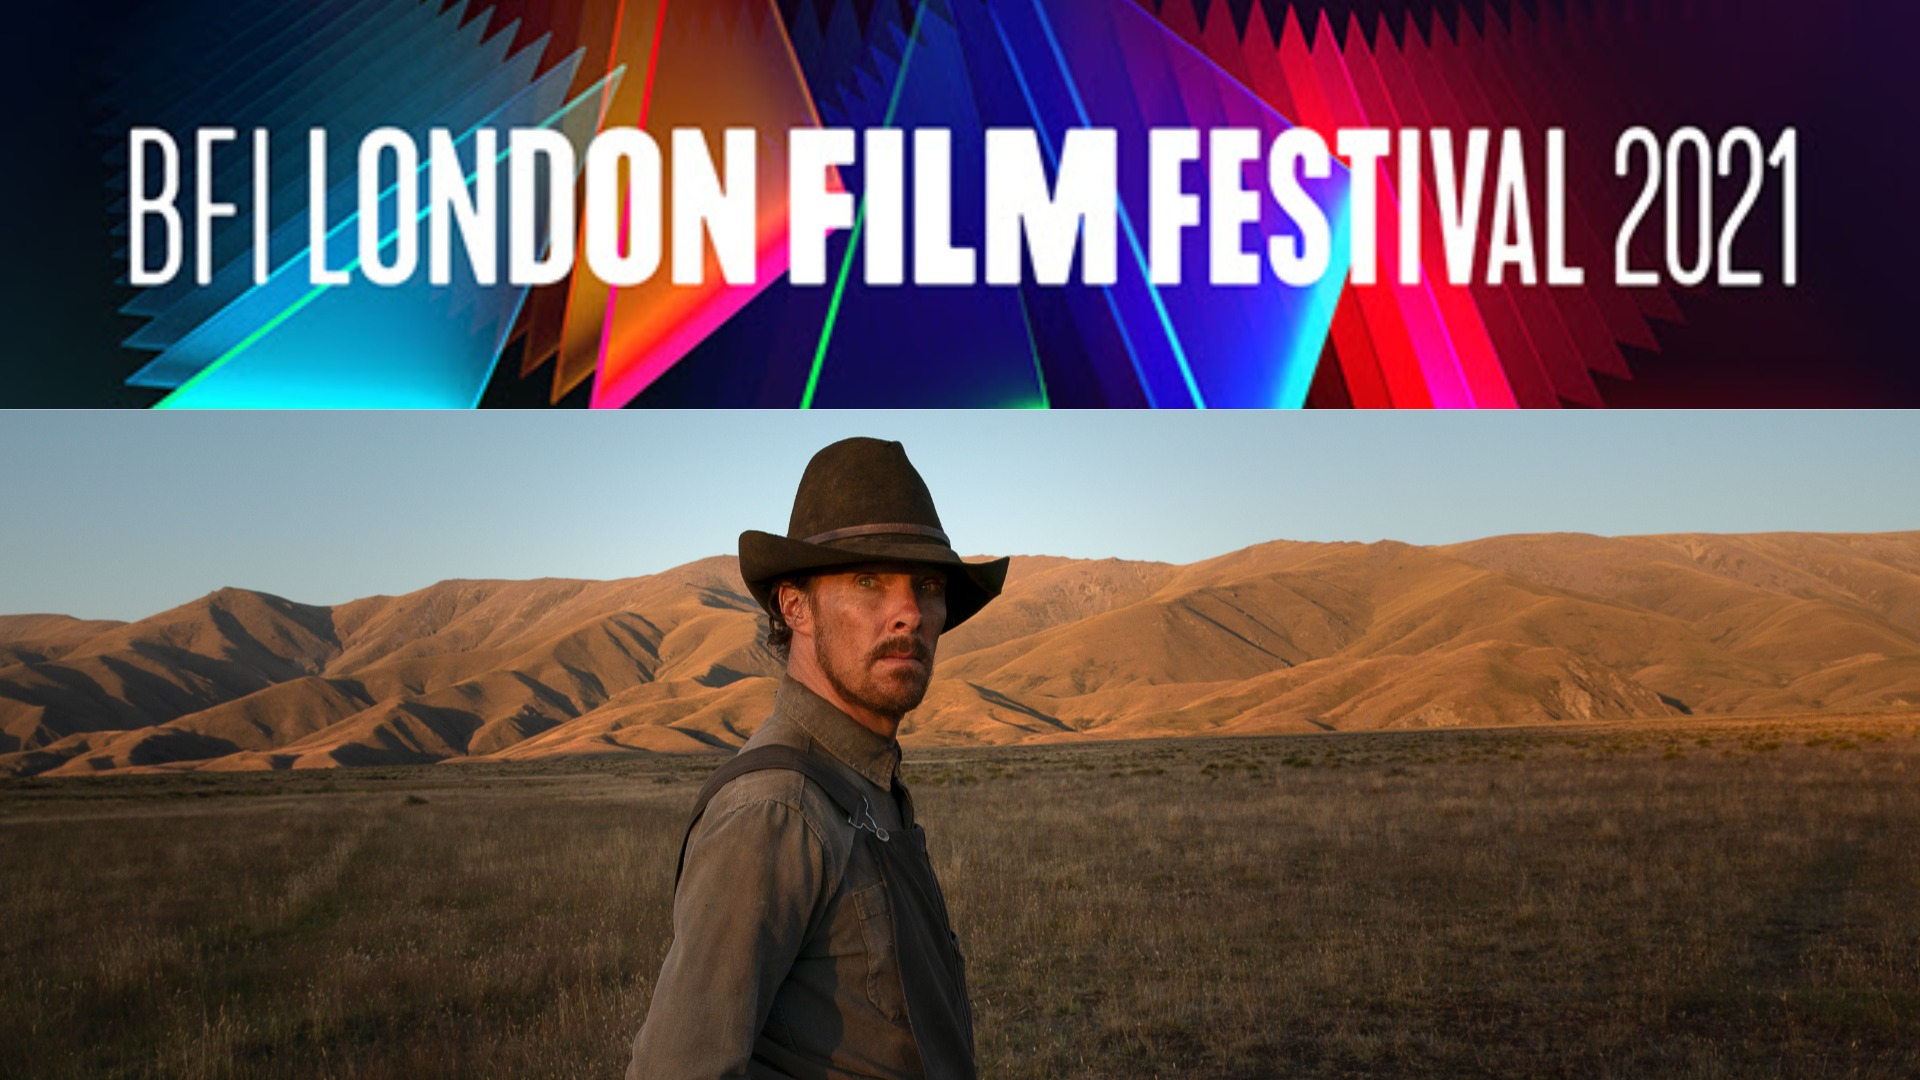 The 65th BFI London Film Festival in partnership with American Express announced that this year's American Express Headline Gala will be Oscar and Palme d'Or winning filmmker Jane Campion's drama The Power Of The Dog.